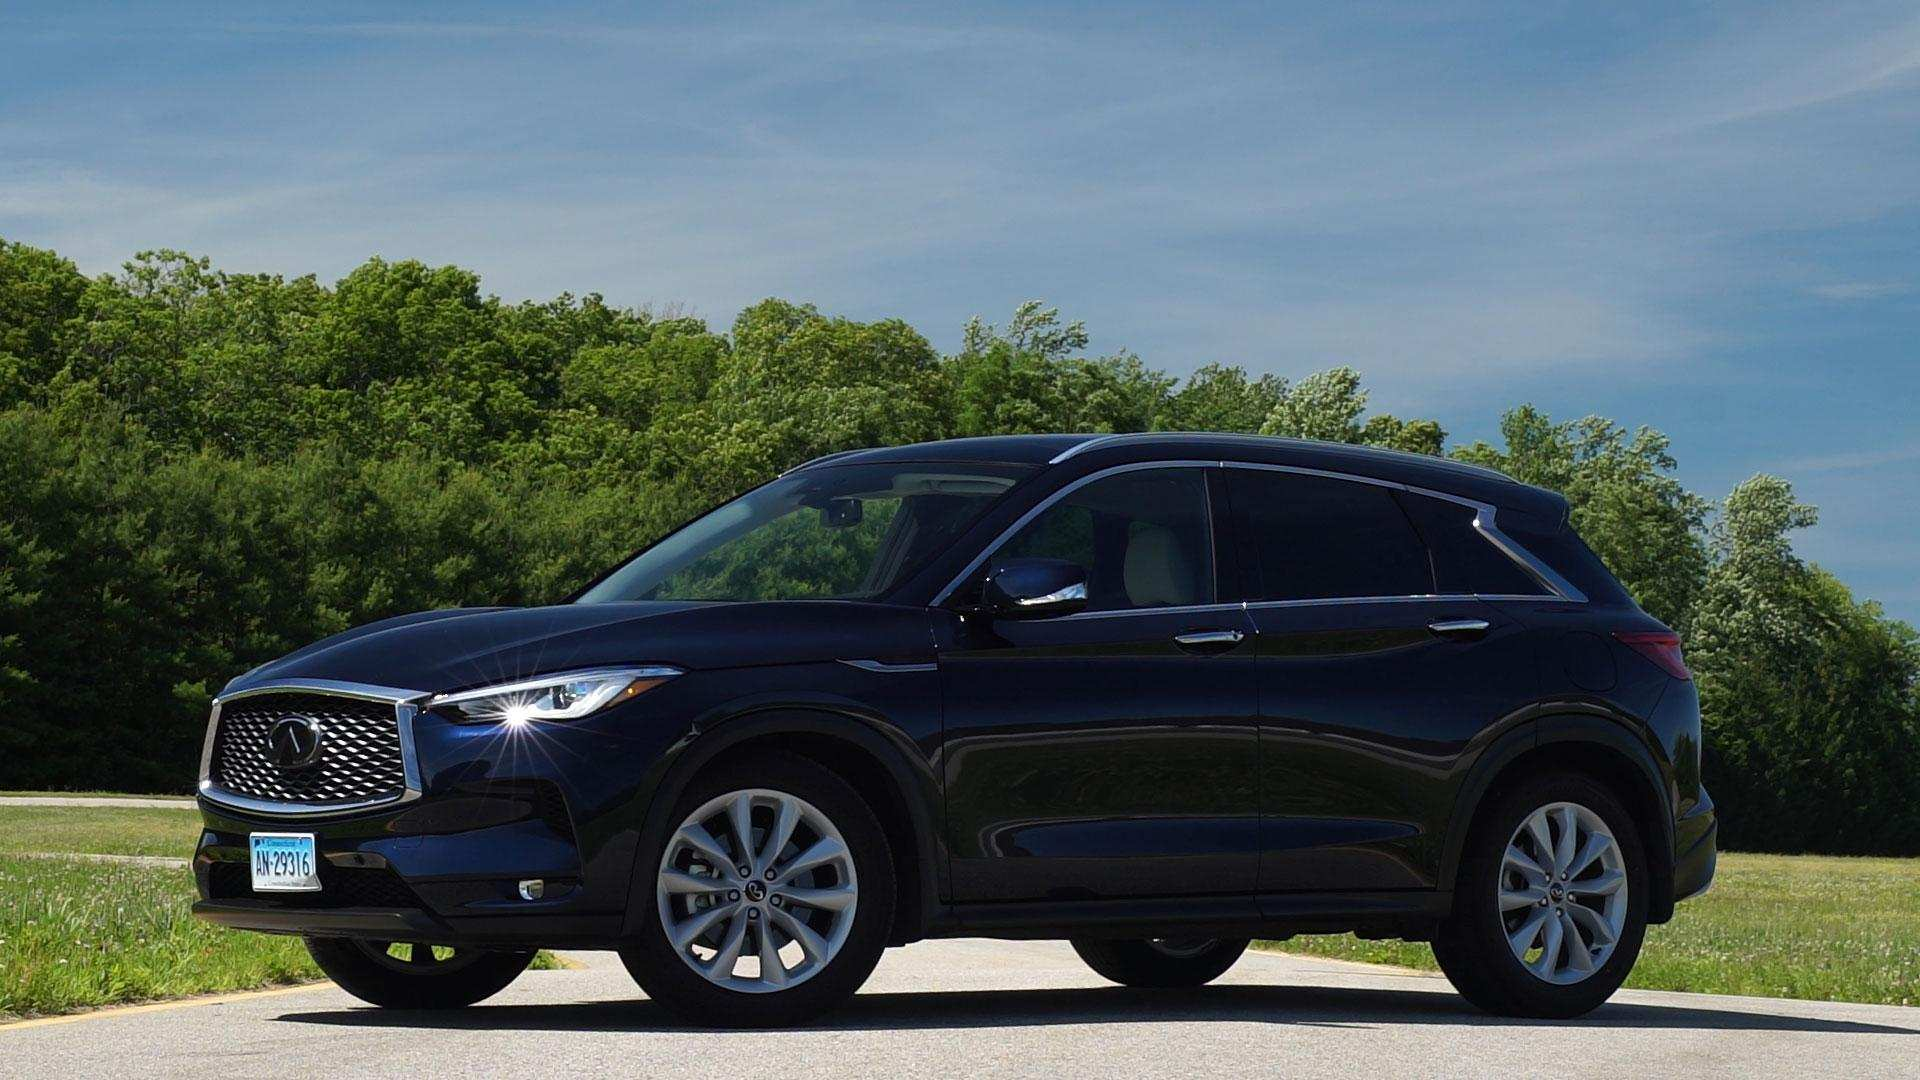 39 Best 2019 Infiniti Qx50 Dimensions Pricing